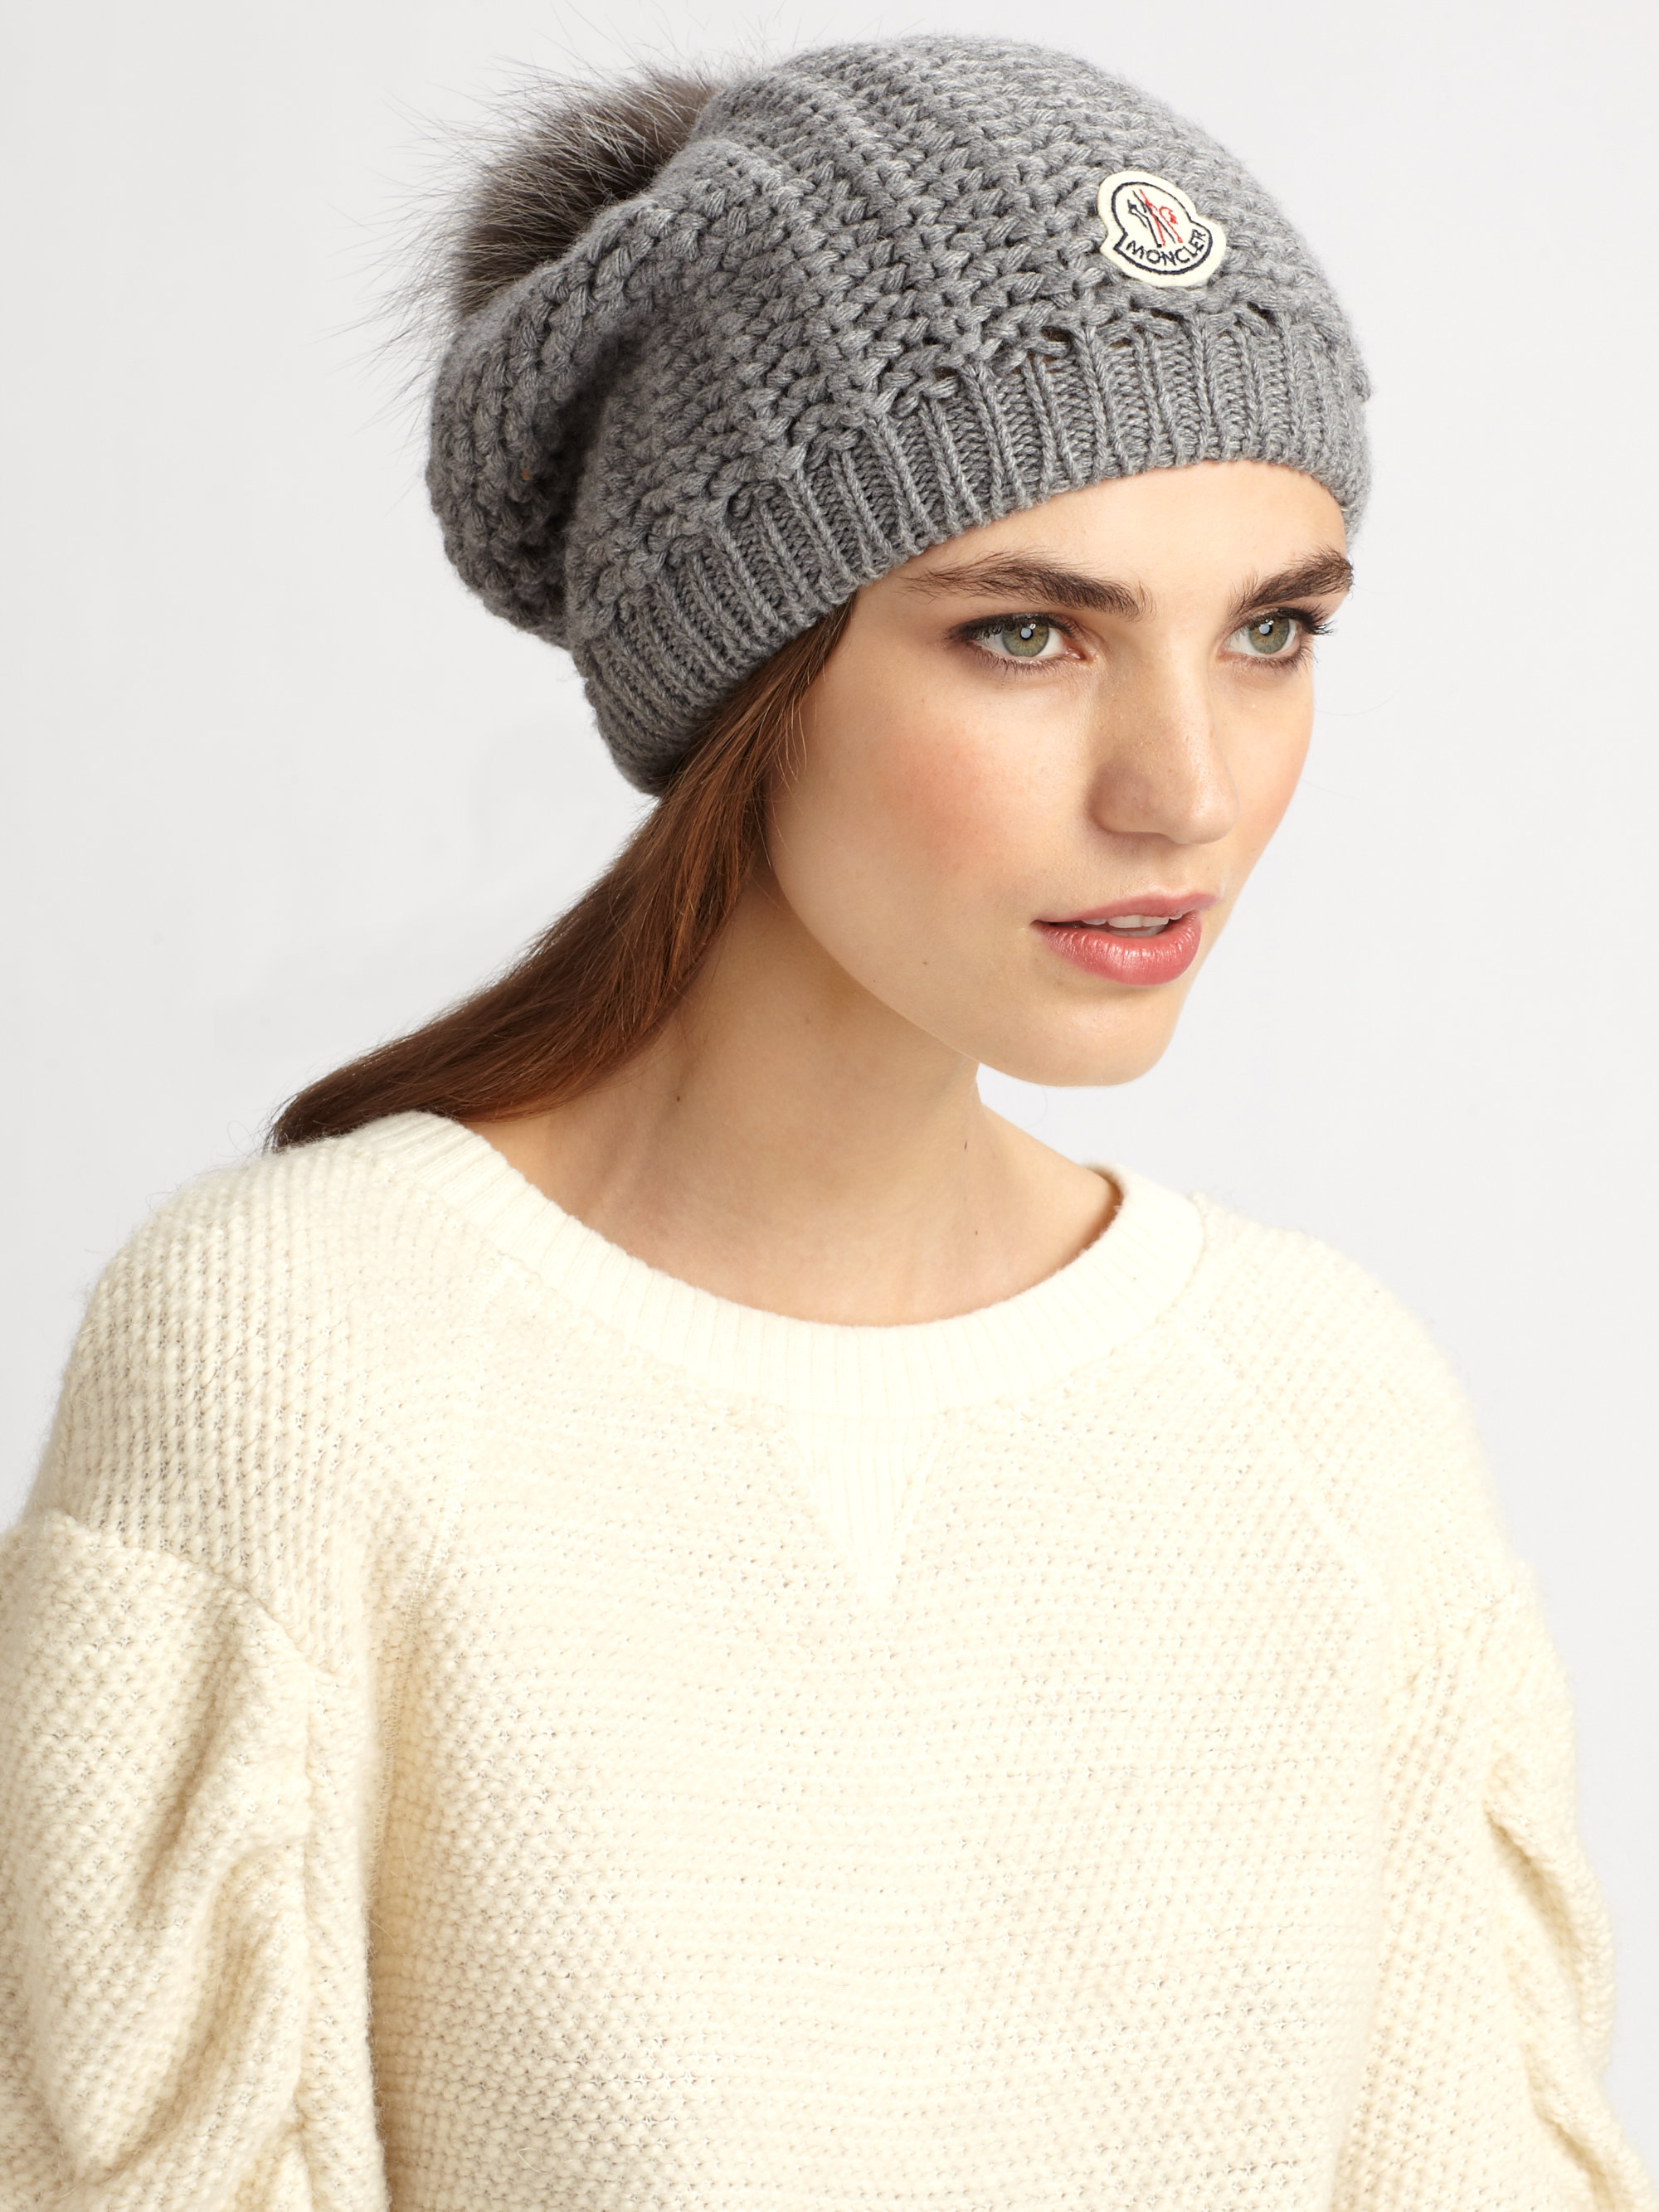 Lyst - Moncler Fox Pompom Knit Hat in Gray 2a356e51cb